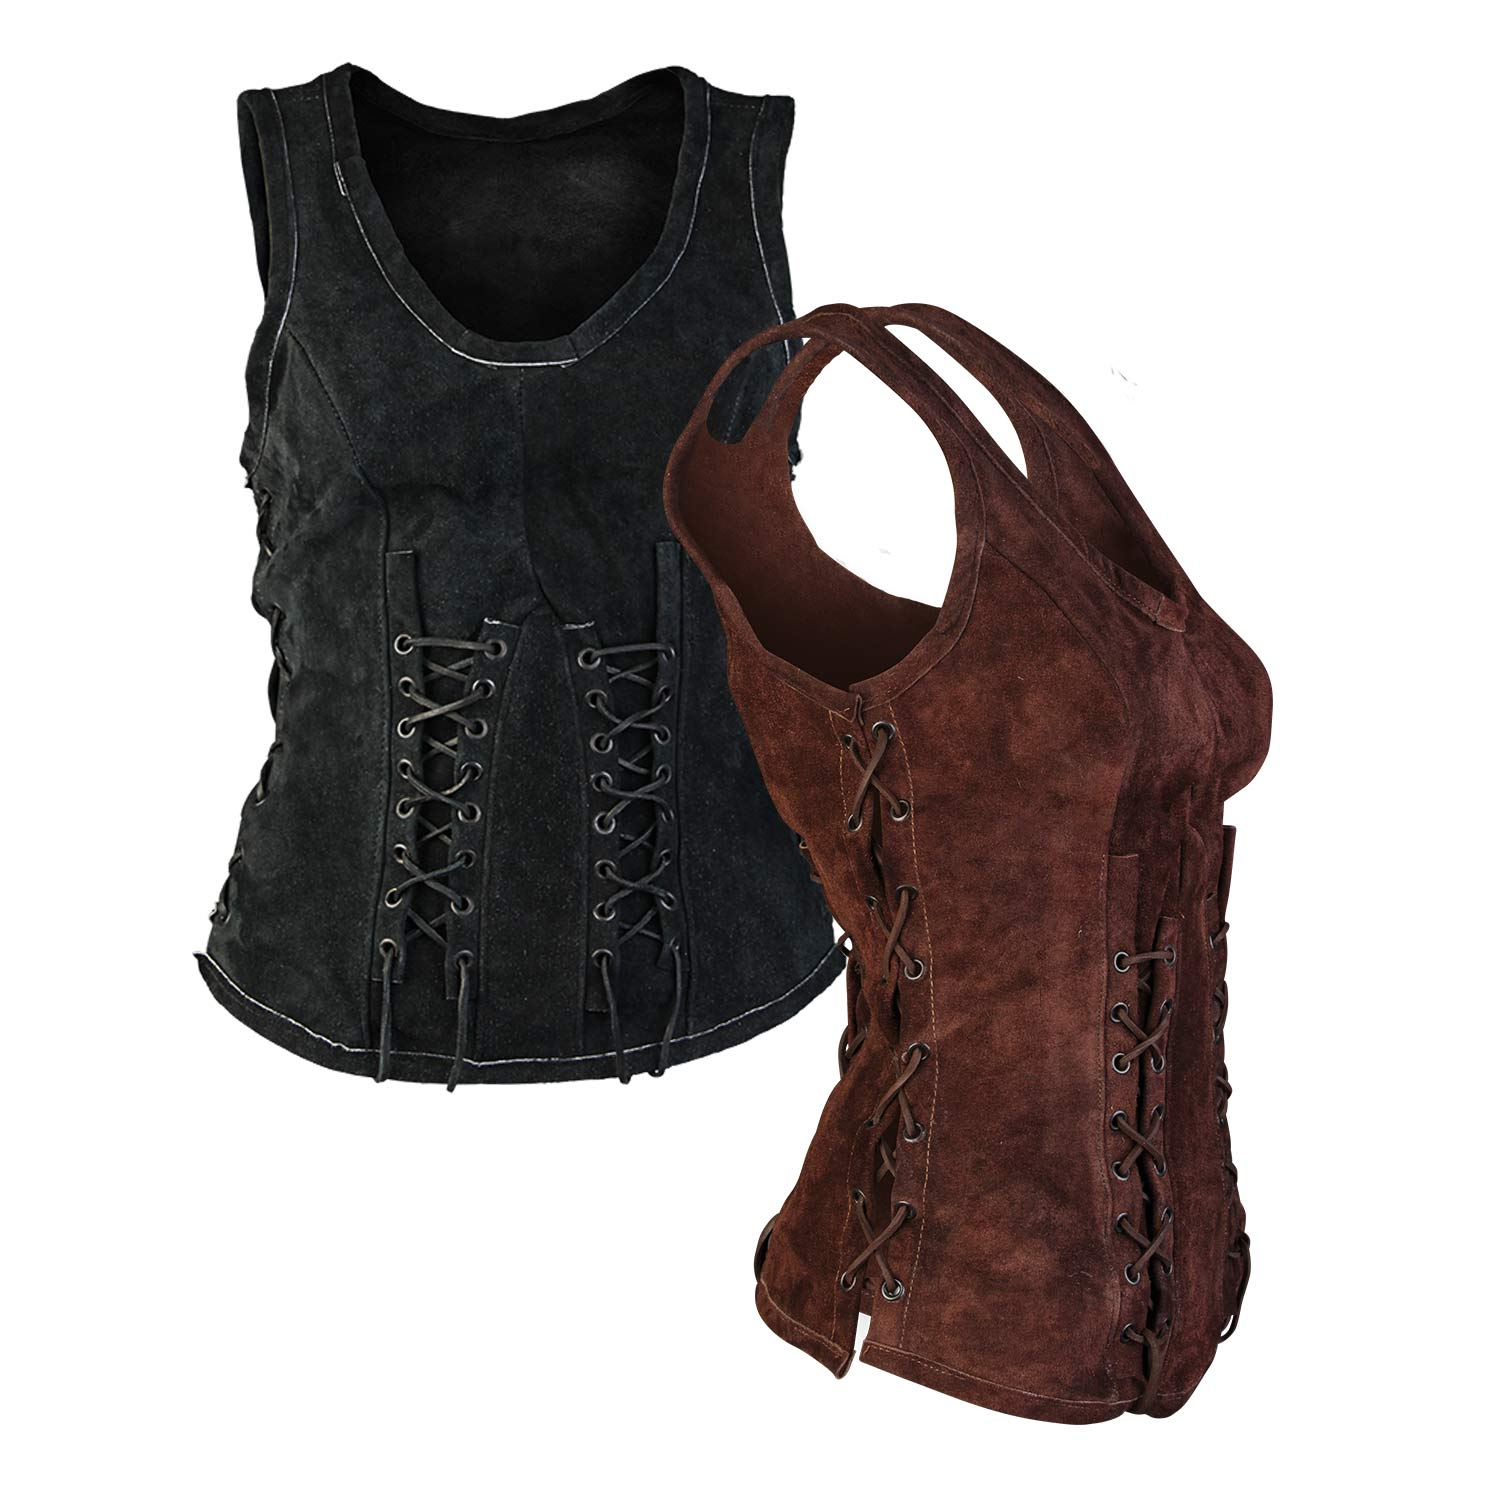 Sarina leather bodice